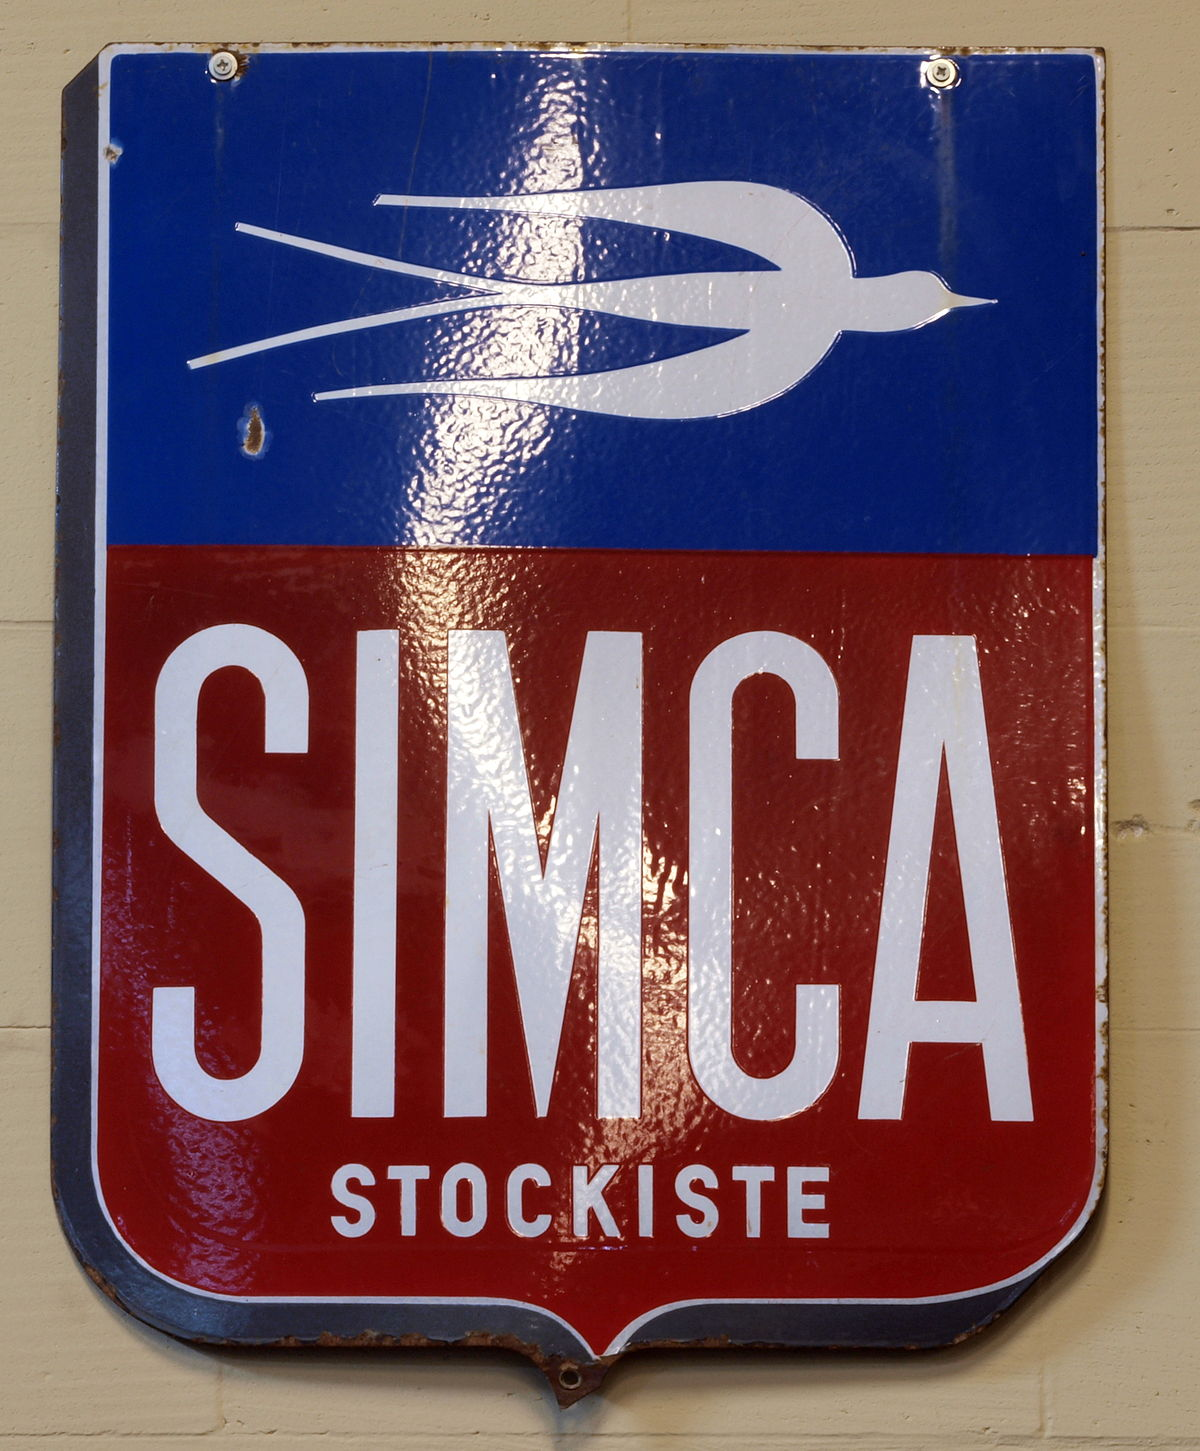 Maxresdefault in addition  besides O in addition Px Simca Stockiste C Enamel Advert Sign At The Den Hartog Ford Museum Pic likewise . on simca 1000